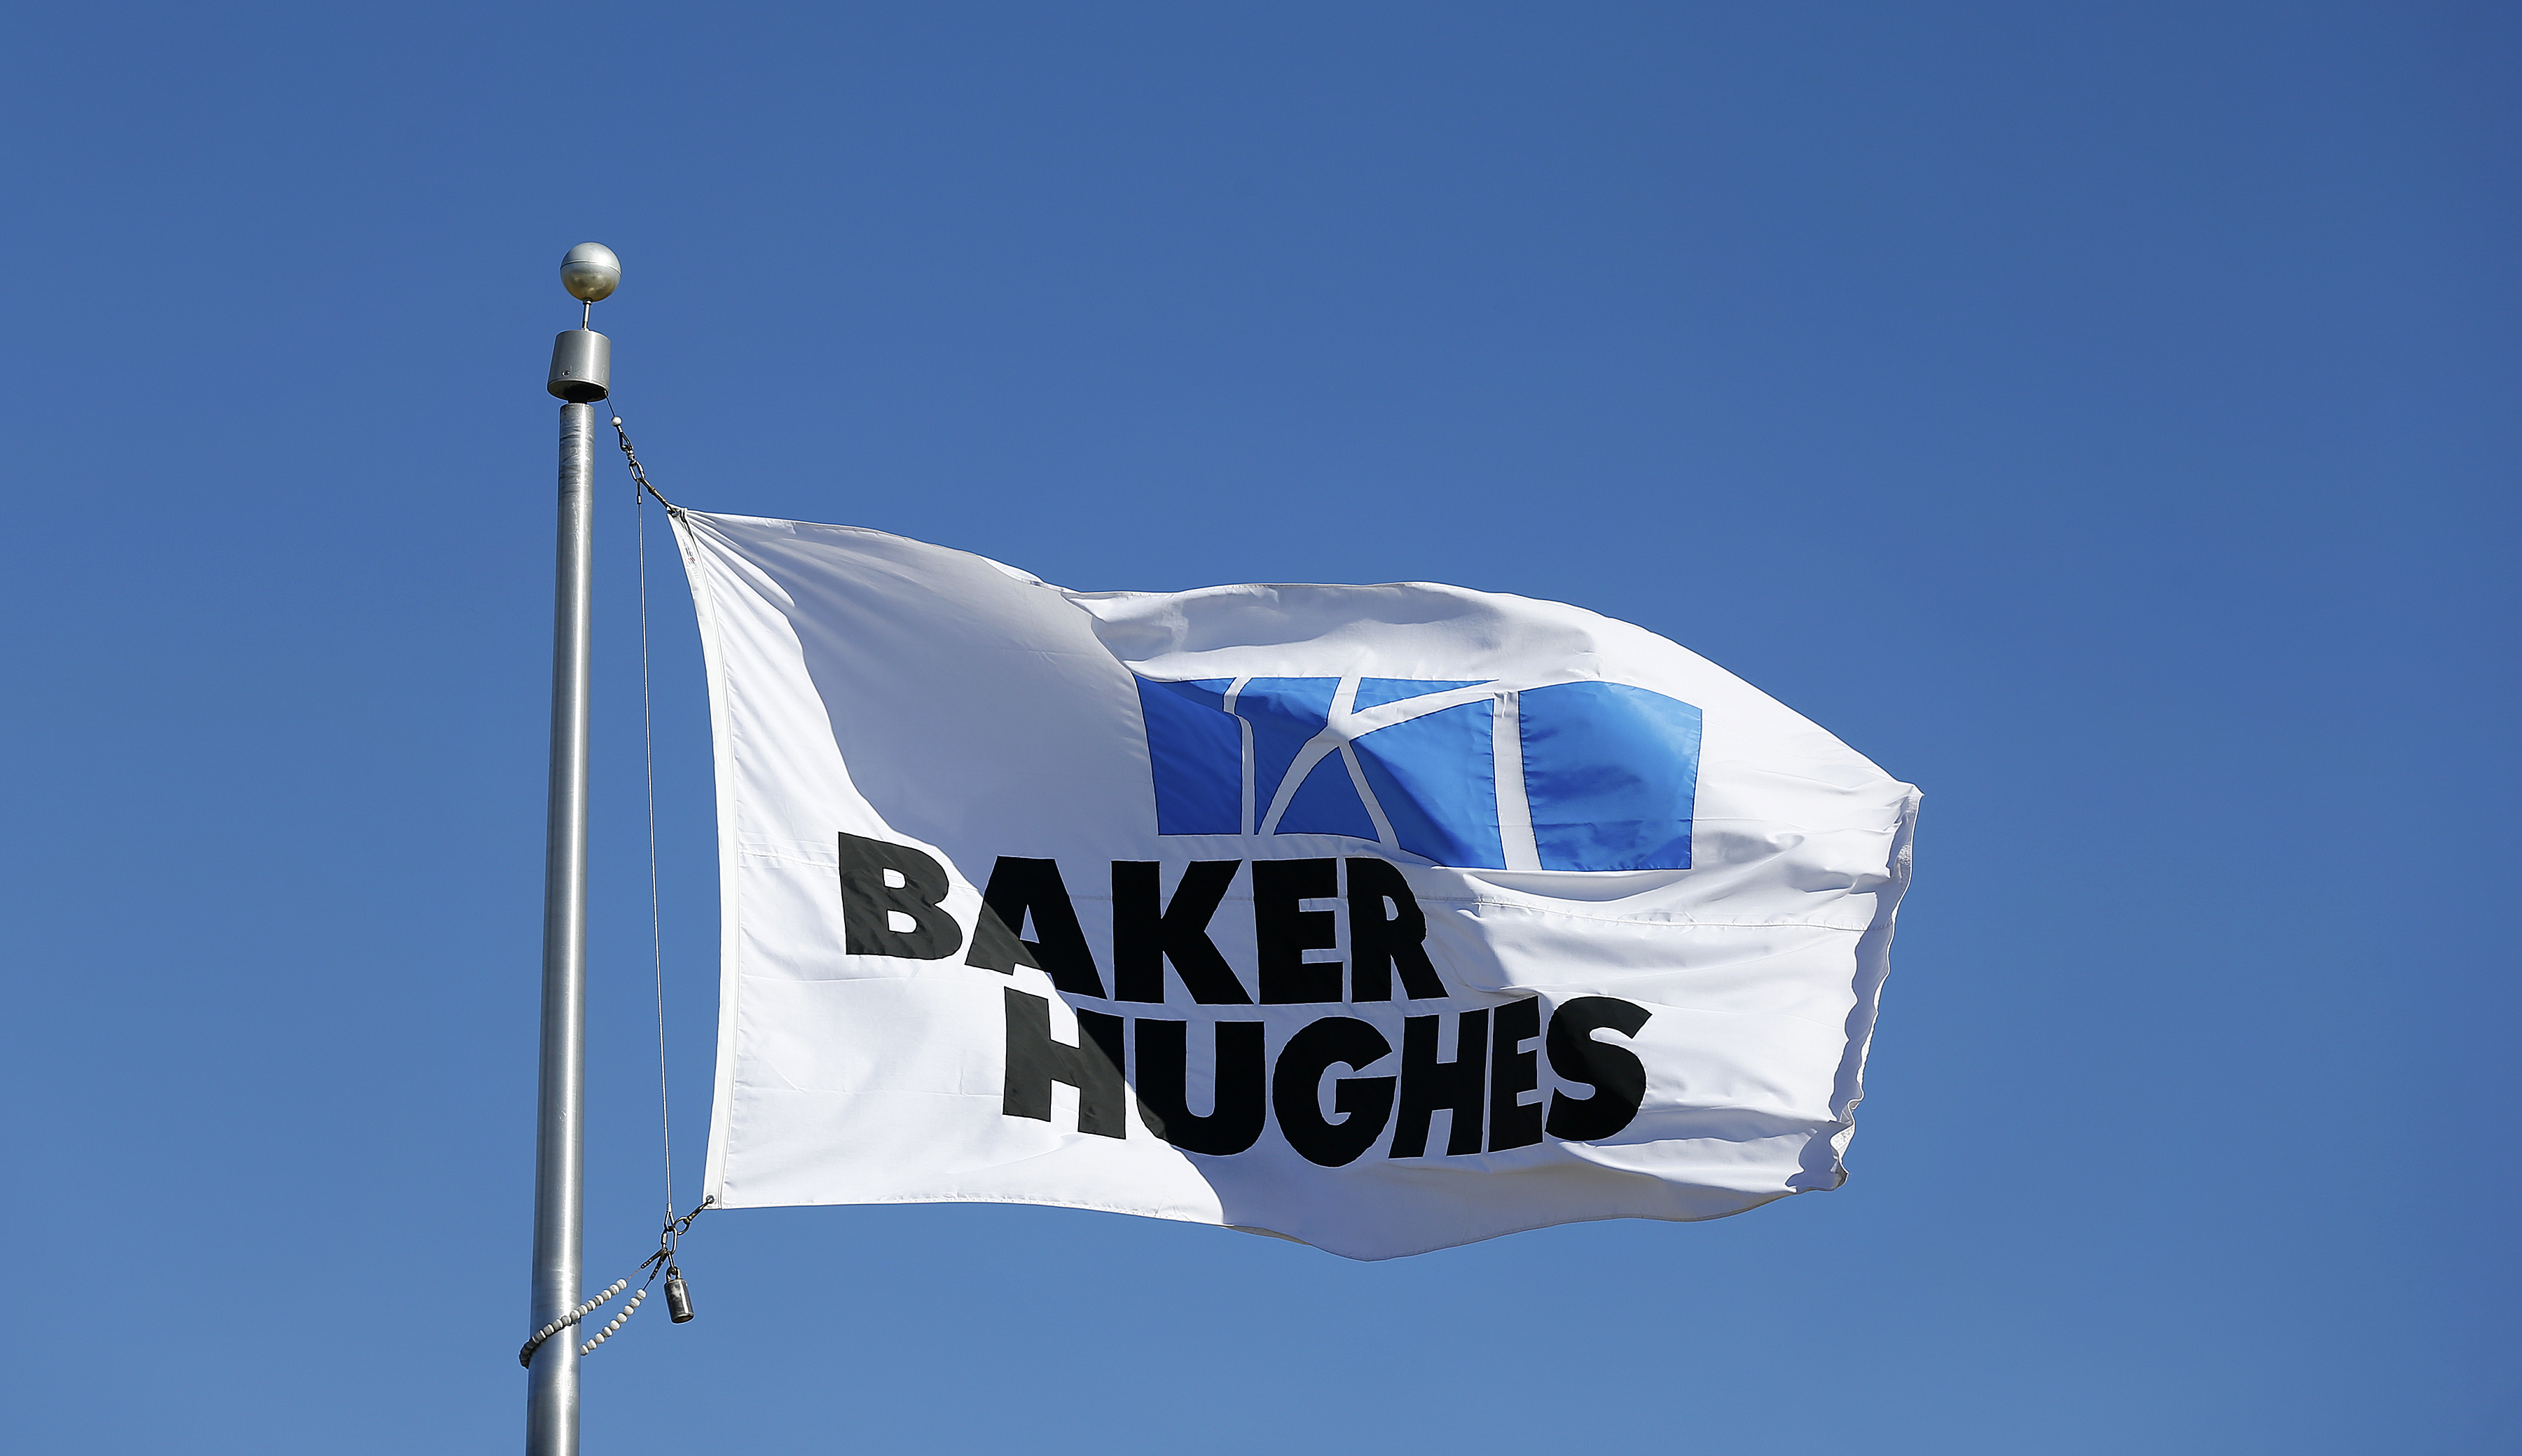 Halliburton to Buy Baker Hughes for $34.6 Billion